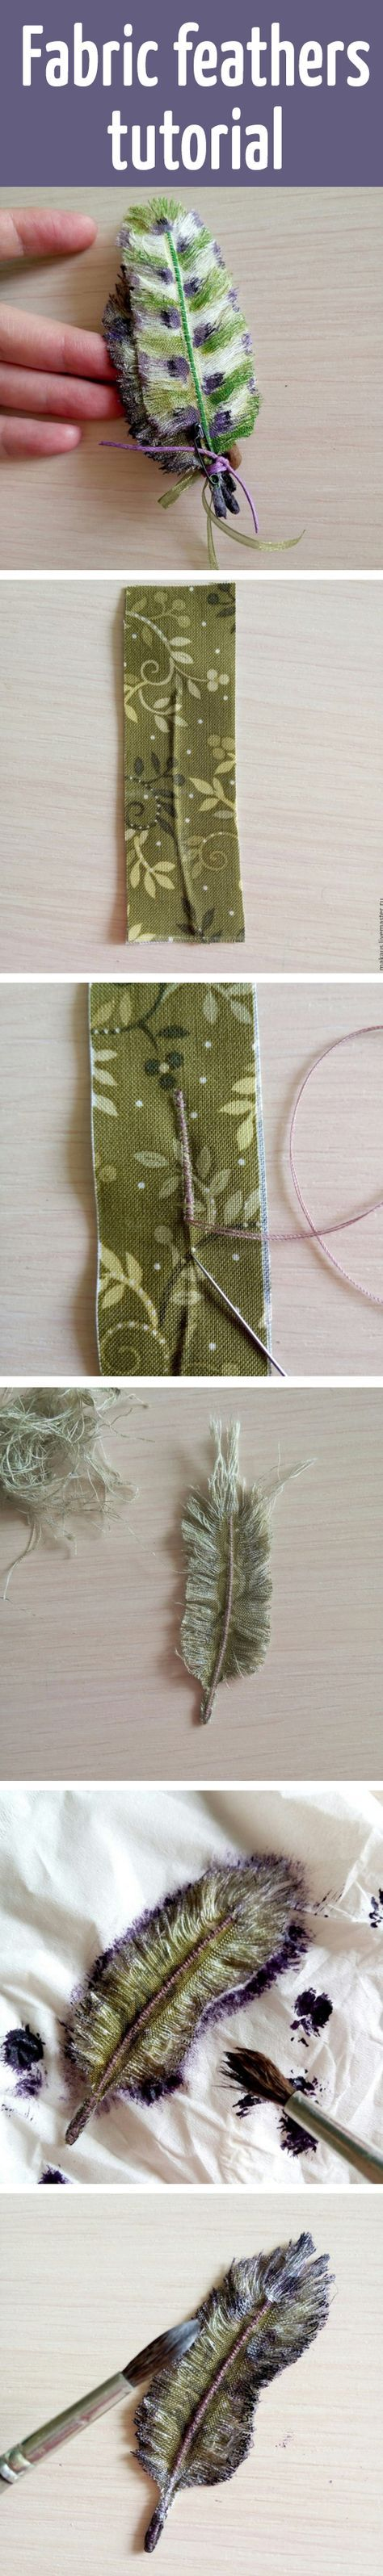 Fabric feathers tutorial #fabric_flower_crafts